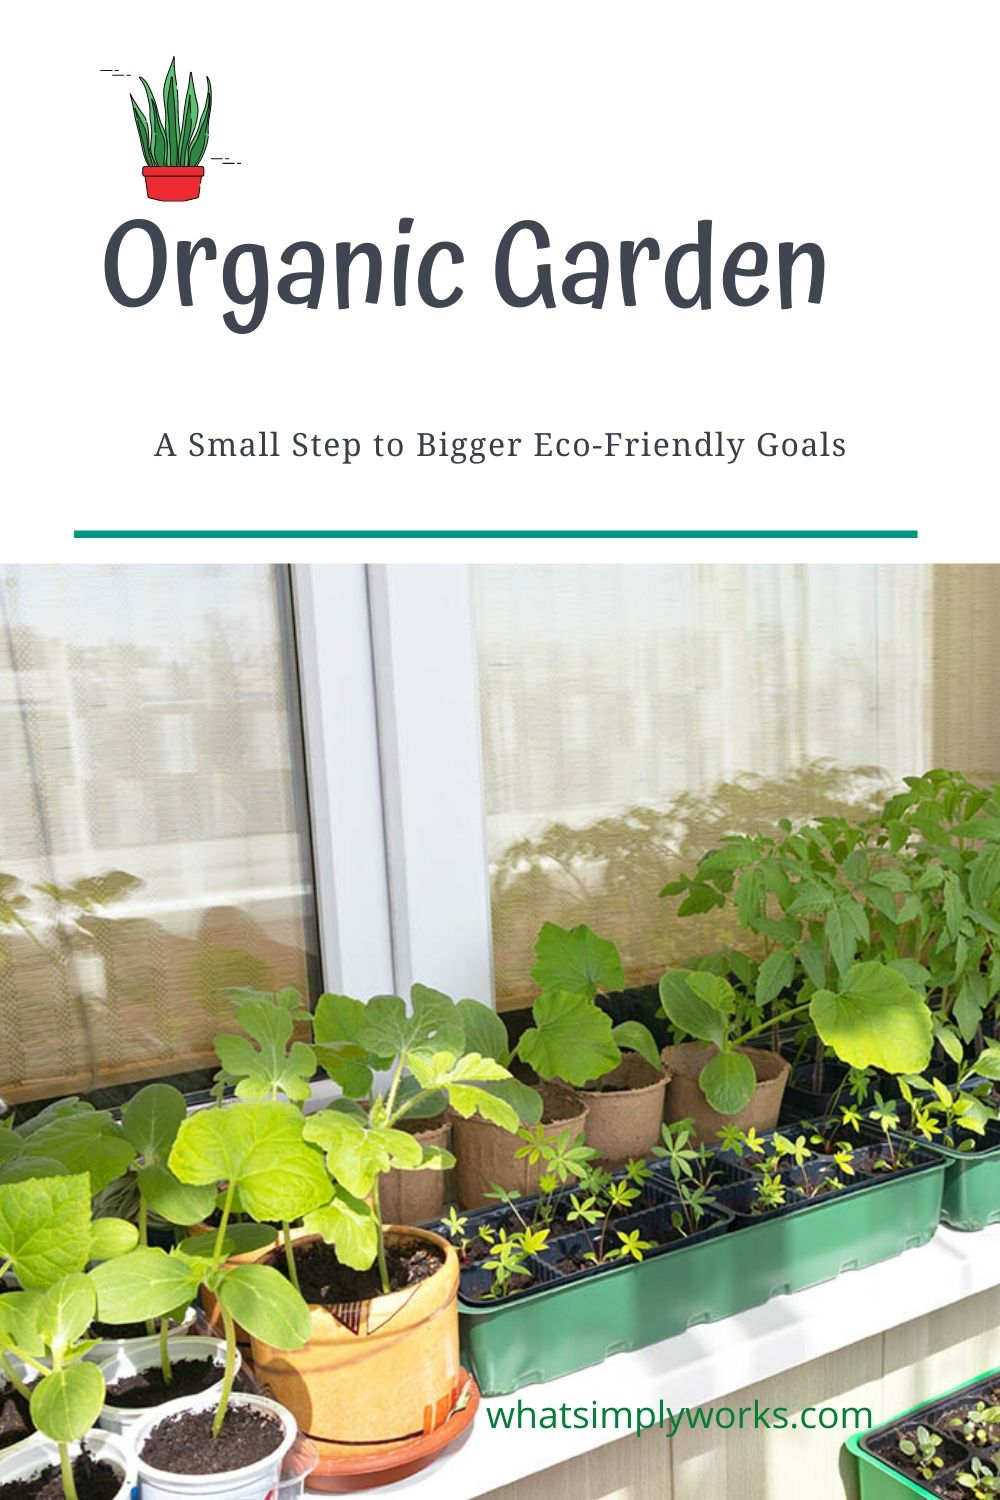 Organic Garden: A Small Step to Bigger Eco-Friendly Goals